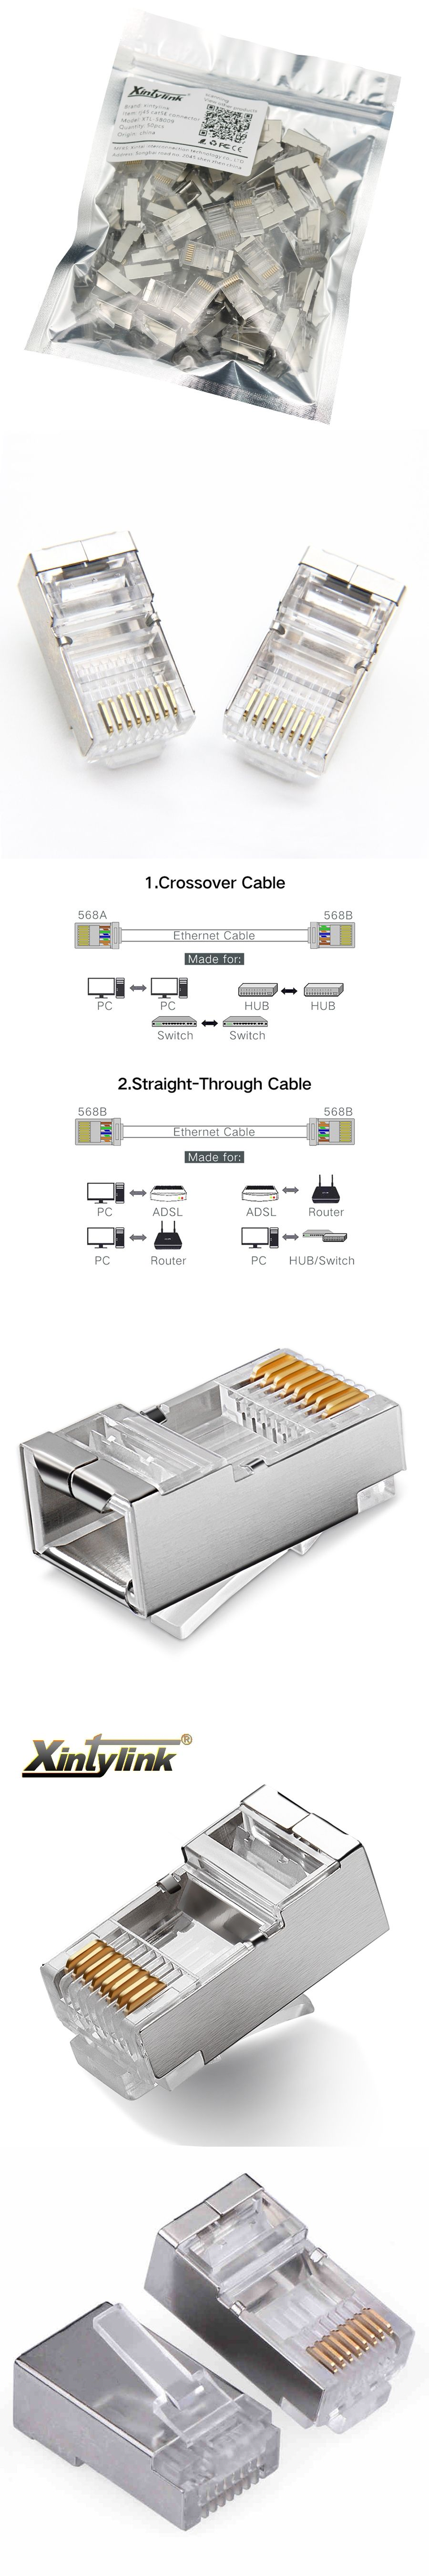 50pcs Rj45 Connector Cat5 Cat5e Network 8p8c Metal Ether Crossover Cable Diagram Further Also Cat 5 Shielded Modular Plug Terminals For Utp